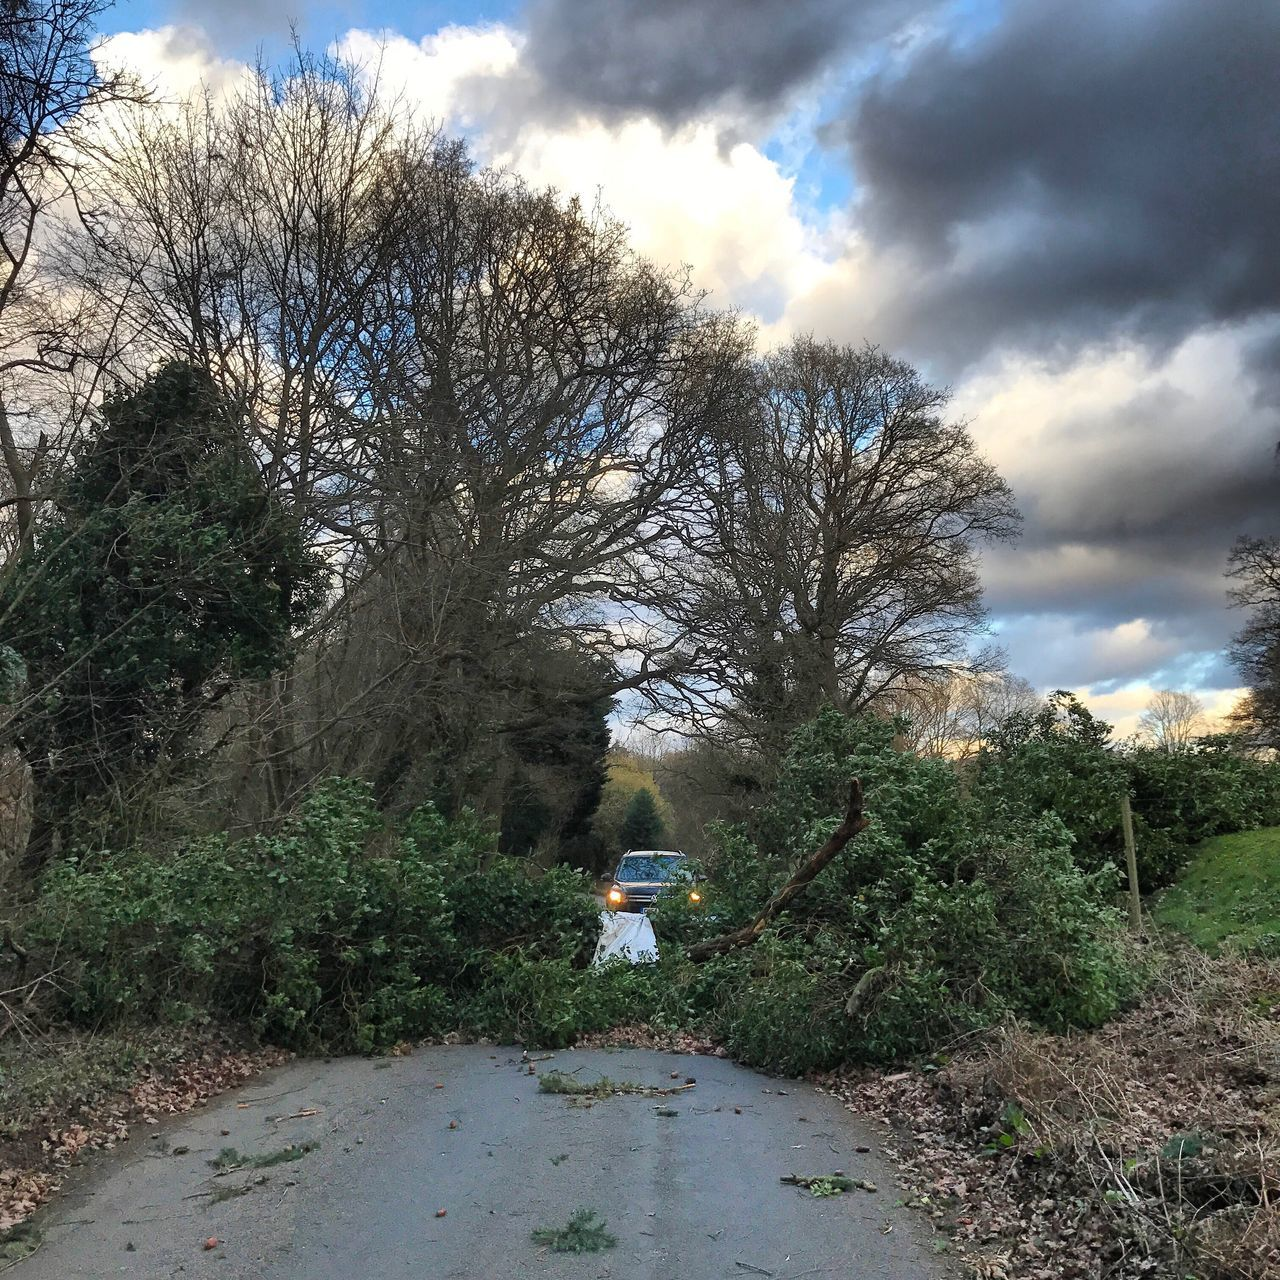 Storm Doris caused fallen trees in Surrey. Tree Sky Transportation Outdoors Day Nature Growth Cloud - Sky Scenics Bare Tree One Person Beauty In Nature Storm Doris Storm Doris Stormy Weather Surrey Fallen Tree Fallen Trees England Uk Europe Gales